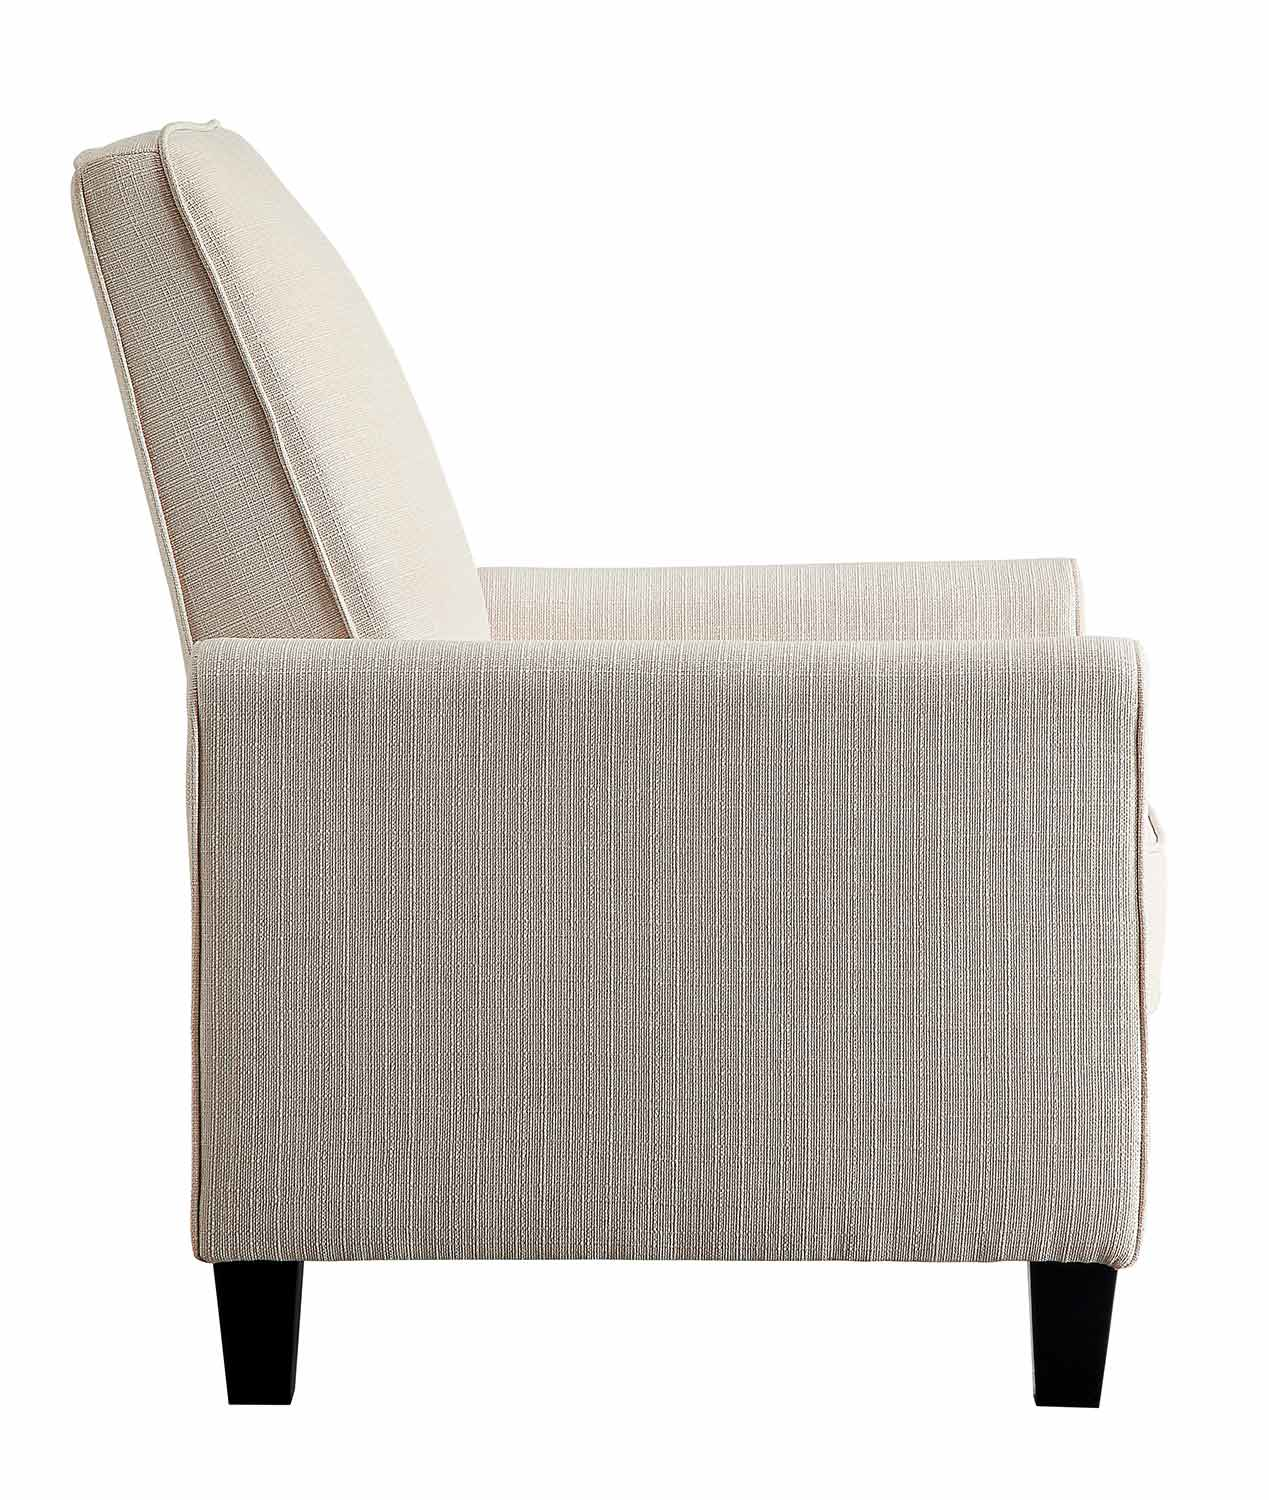 Homelegance Darcel Push Back Reclining Chair - Beige